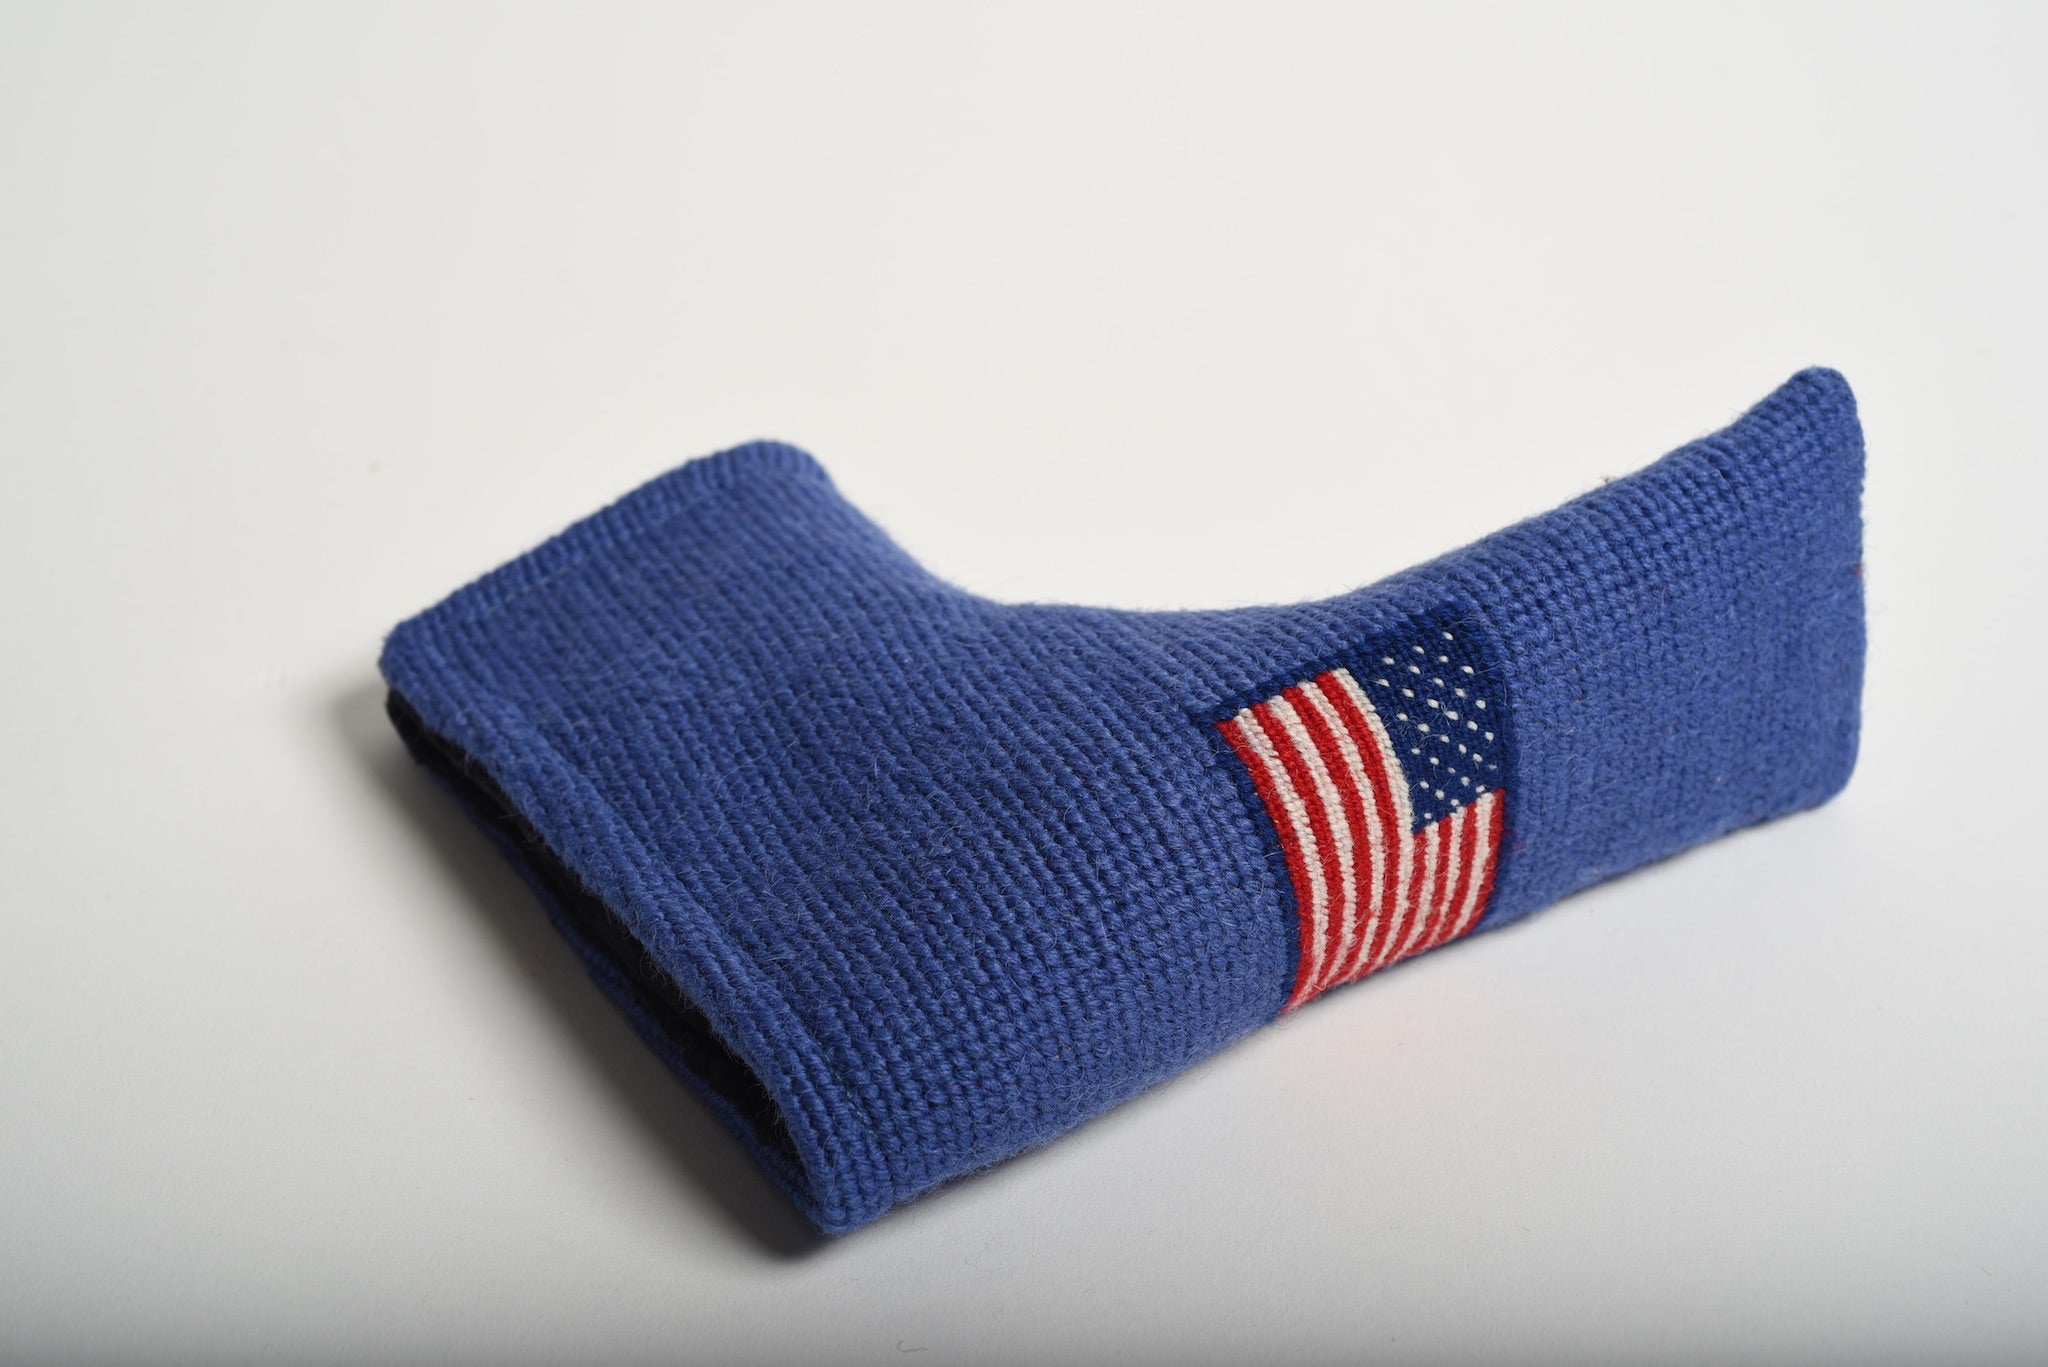 American Flag Ocean Blue Needlepoint Blade Putter Headcover